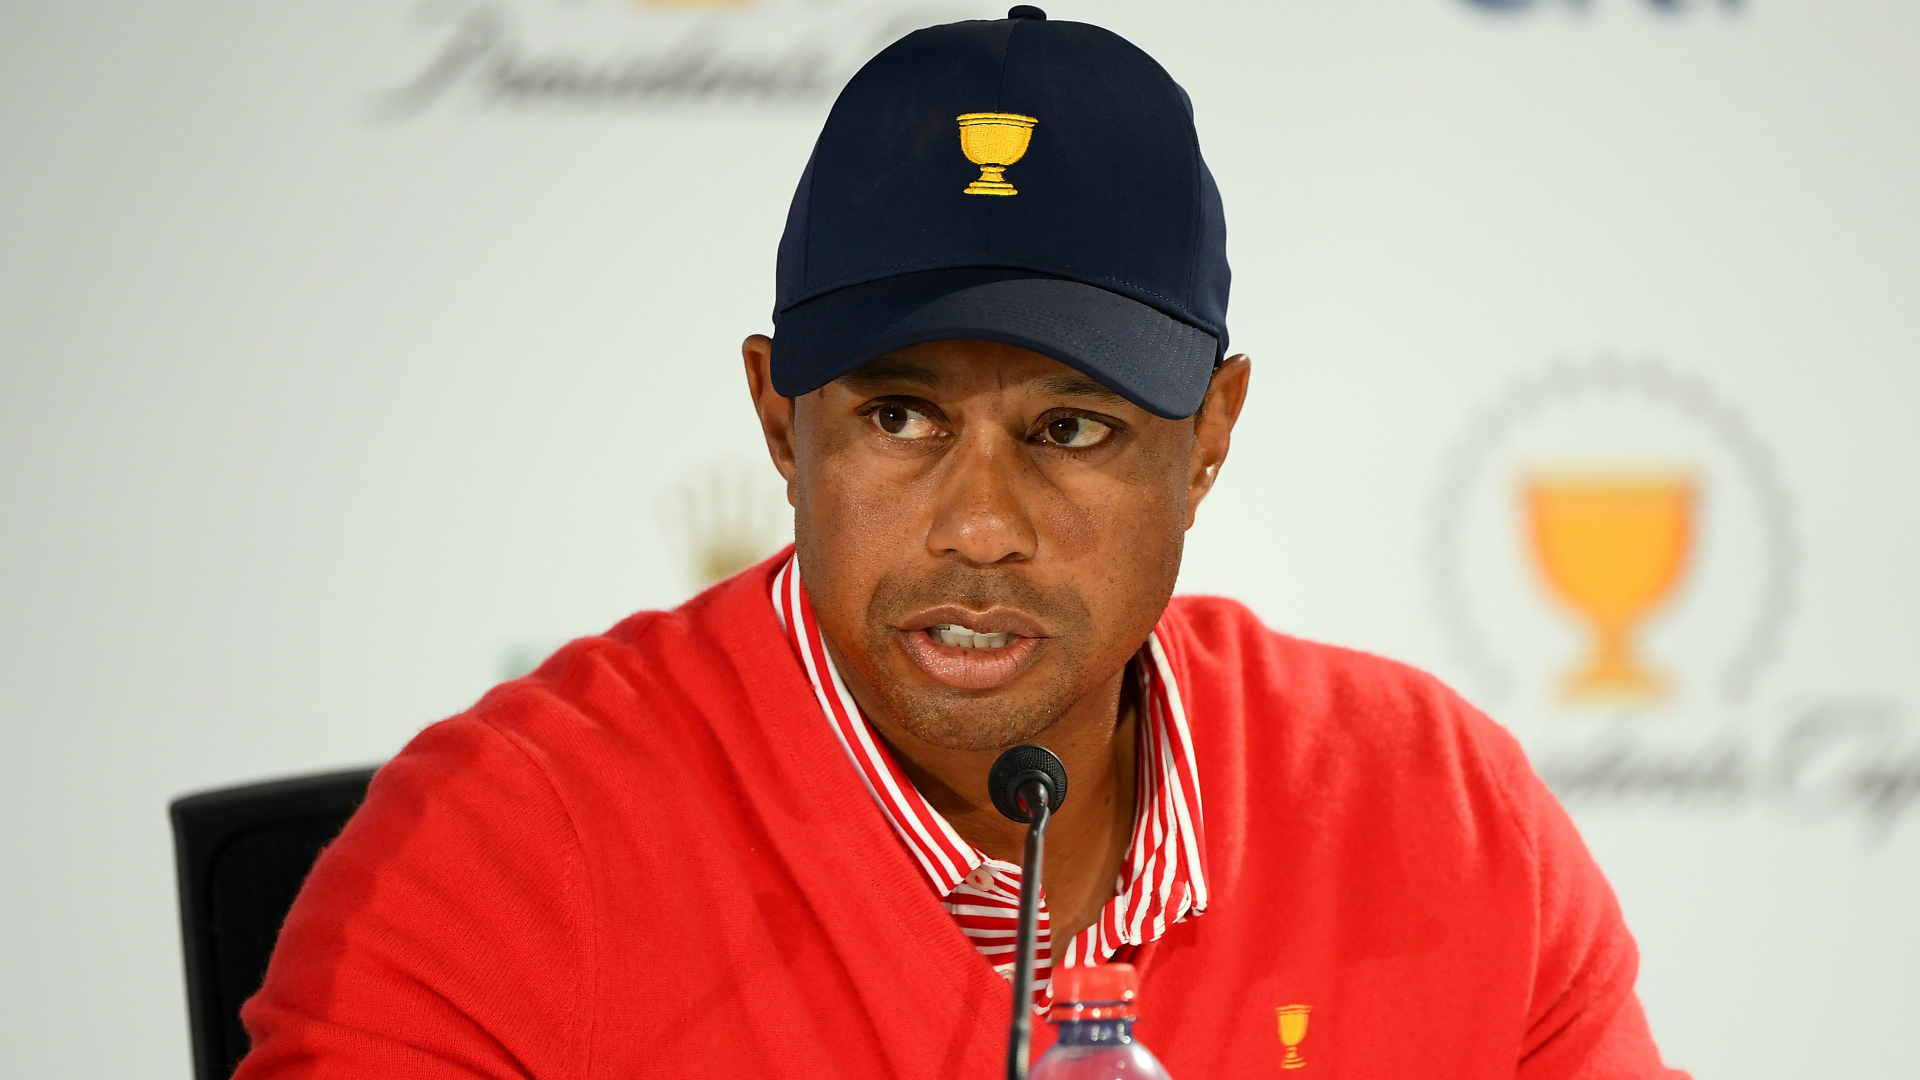 Presidents Cup 2019: There's a long way to go - Tiger Woods